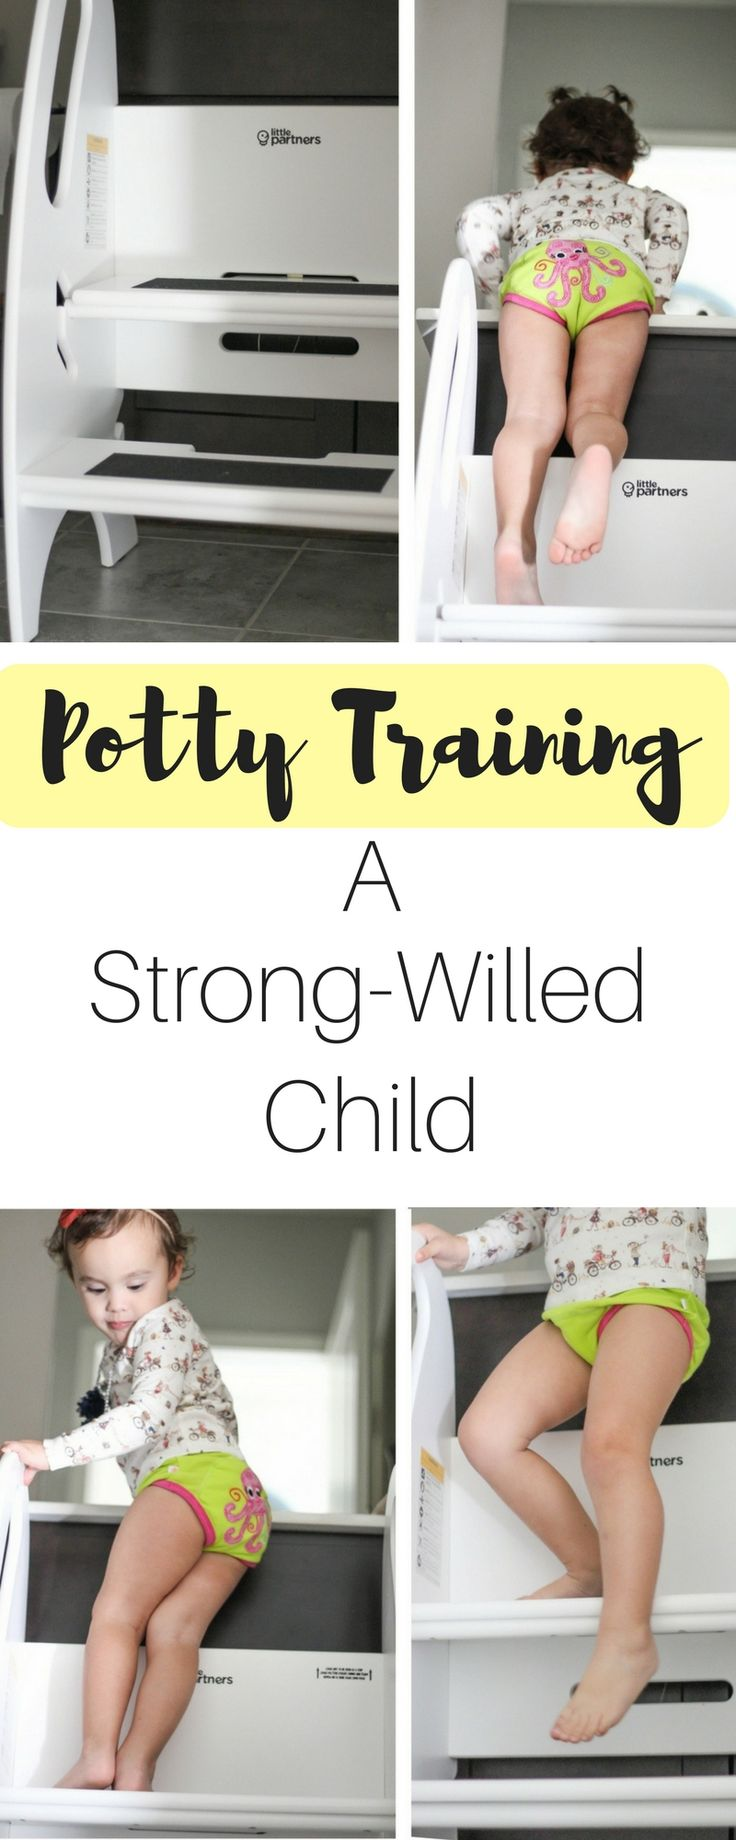 Potty Training A Strong Willed Child | Potty Training A difficult child | Potty Training a Toddler | Potty Training a 2 year old | How to potty train | All The Tricks of Potty Training | Best Potty Training pulls ups, undies and training pants (AD) Little Partners | Best Step Stool | Potty Training Tips | Best way to potty train a toddler